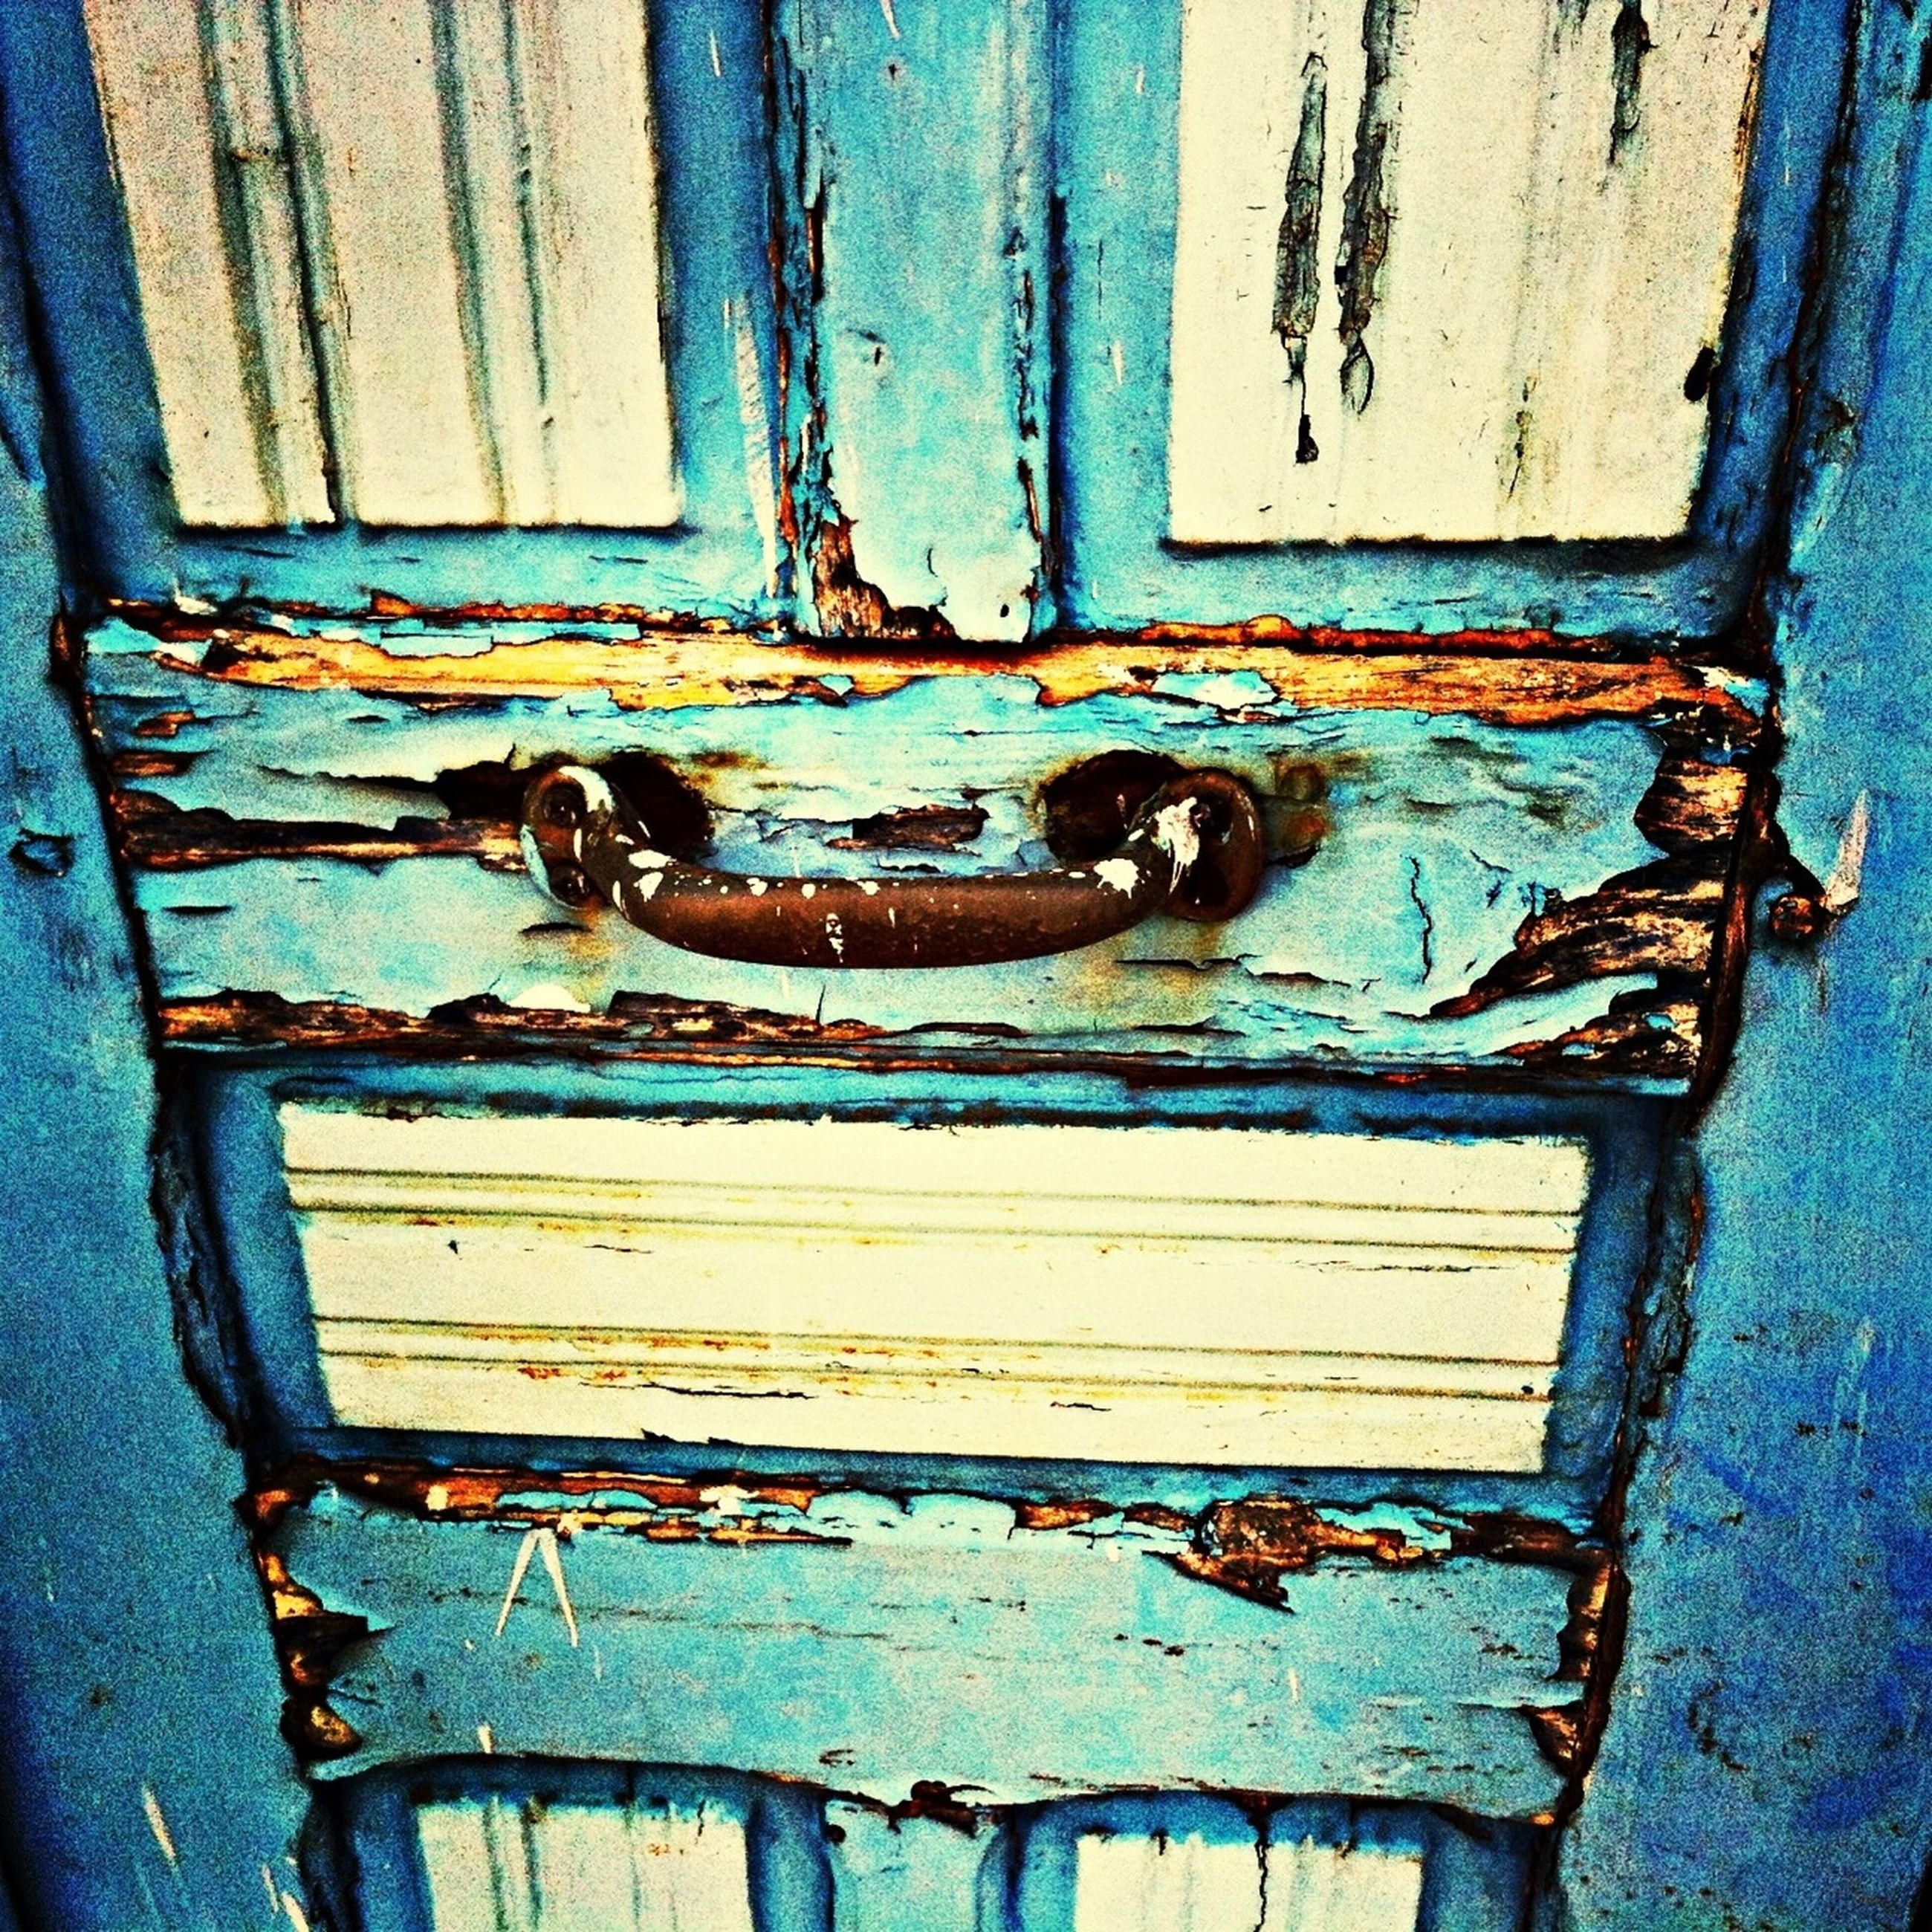 weathered, abandoned, old, damaged, obsolete, run-down, deterioration, rusty, bad condition, door, metal, peeling off, wood - material, built structure, full frame, close-up, wall - building feature, broken, backgrounds, metallic